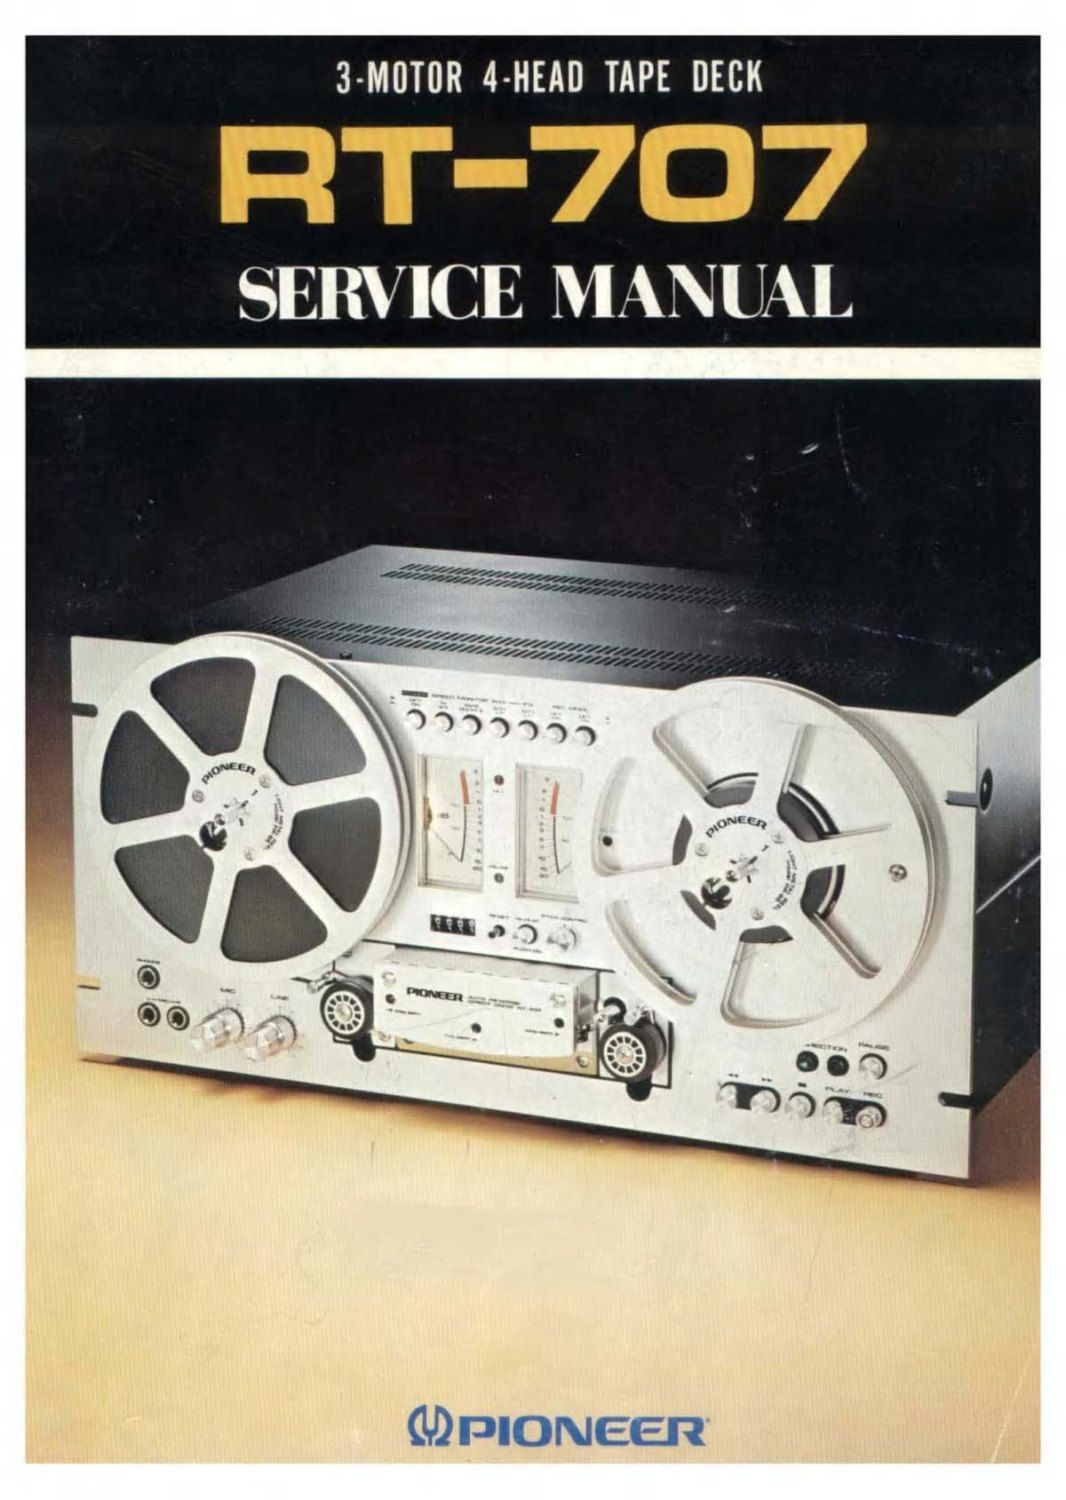 Pioneer RT-707 Service Owners Manual Schematics and More! - Instant Download  !!